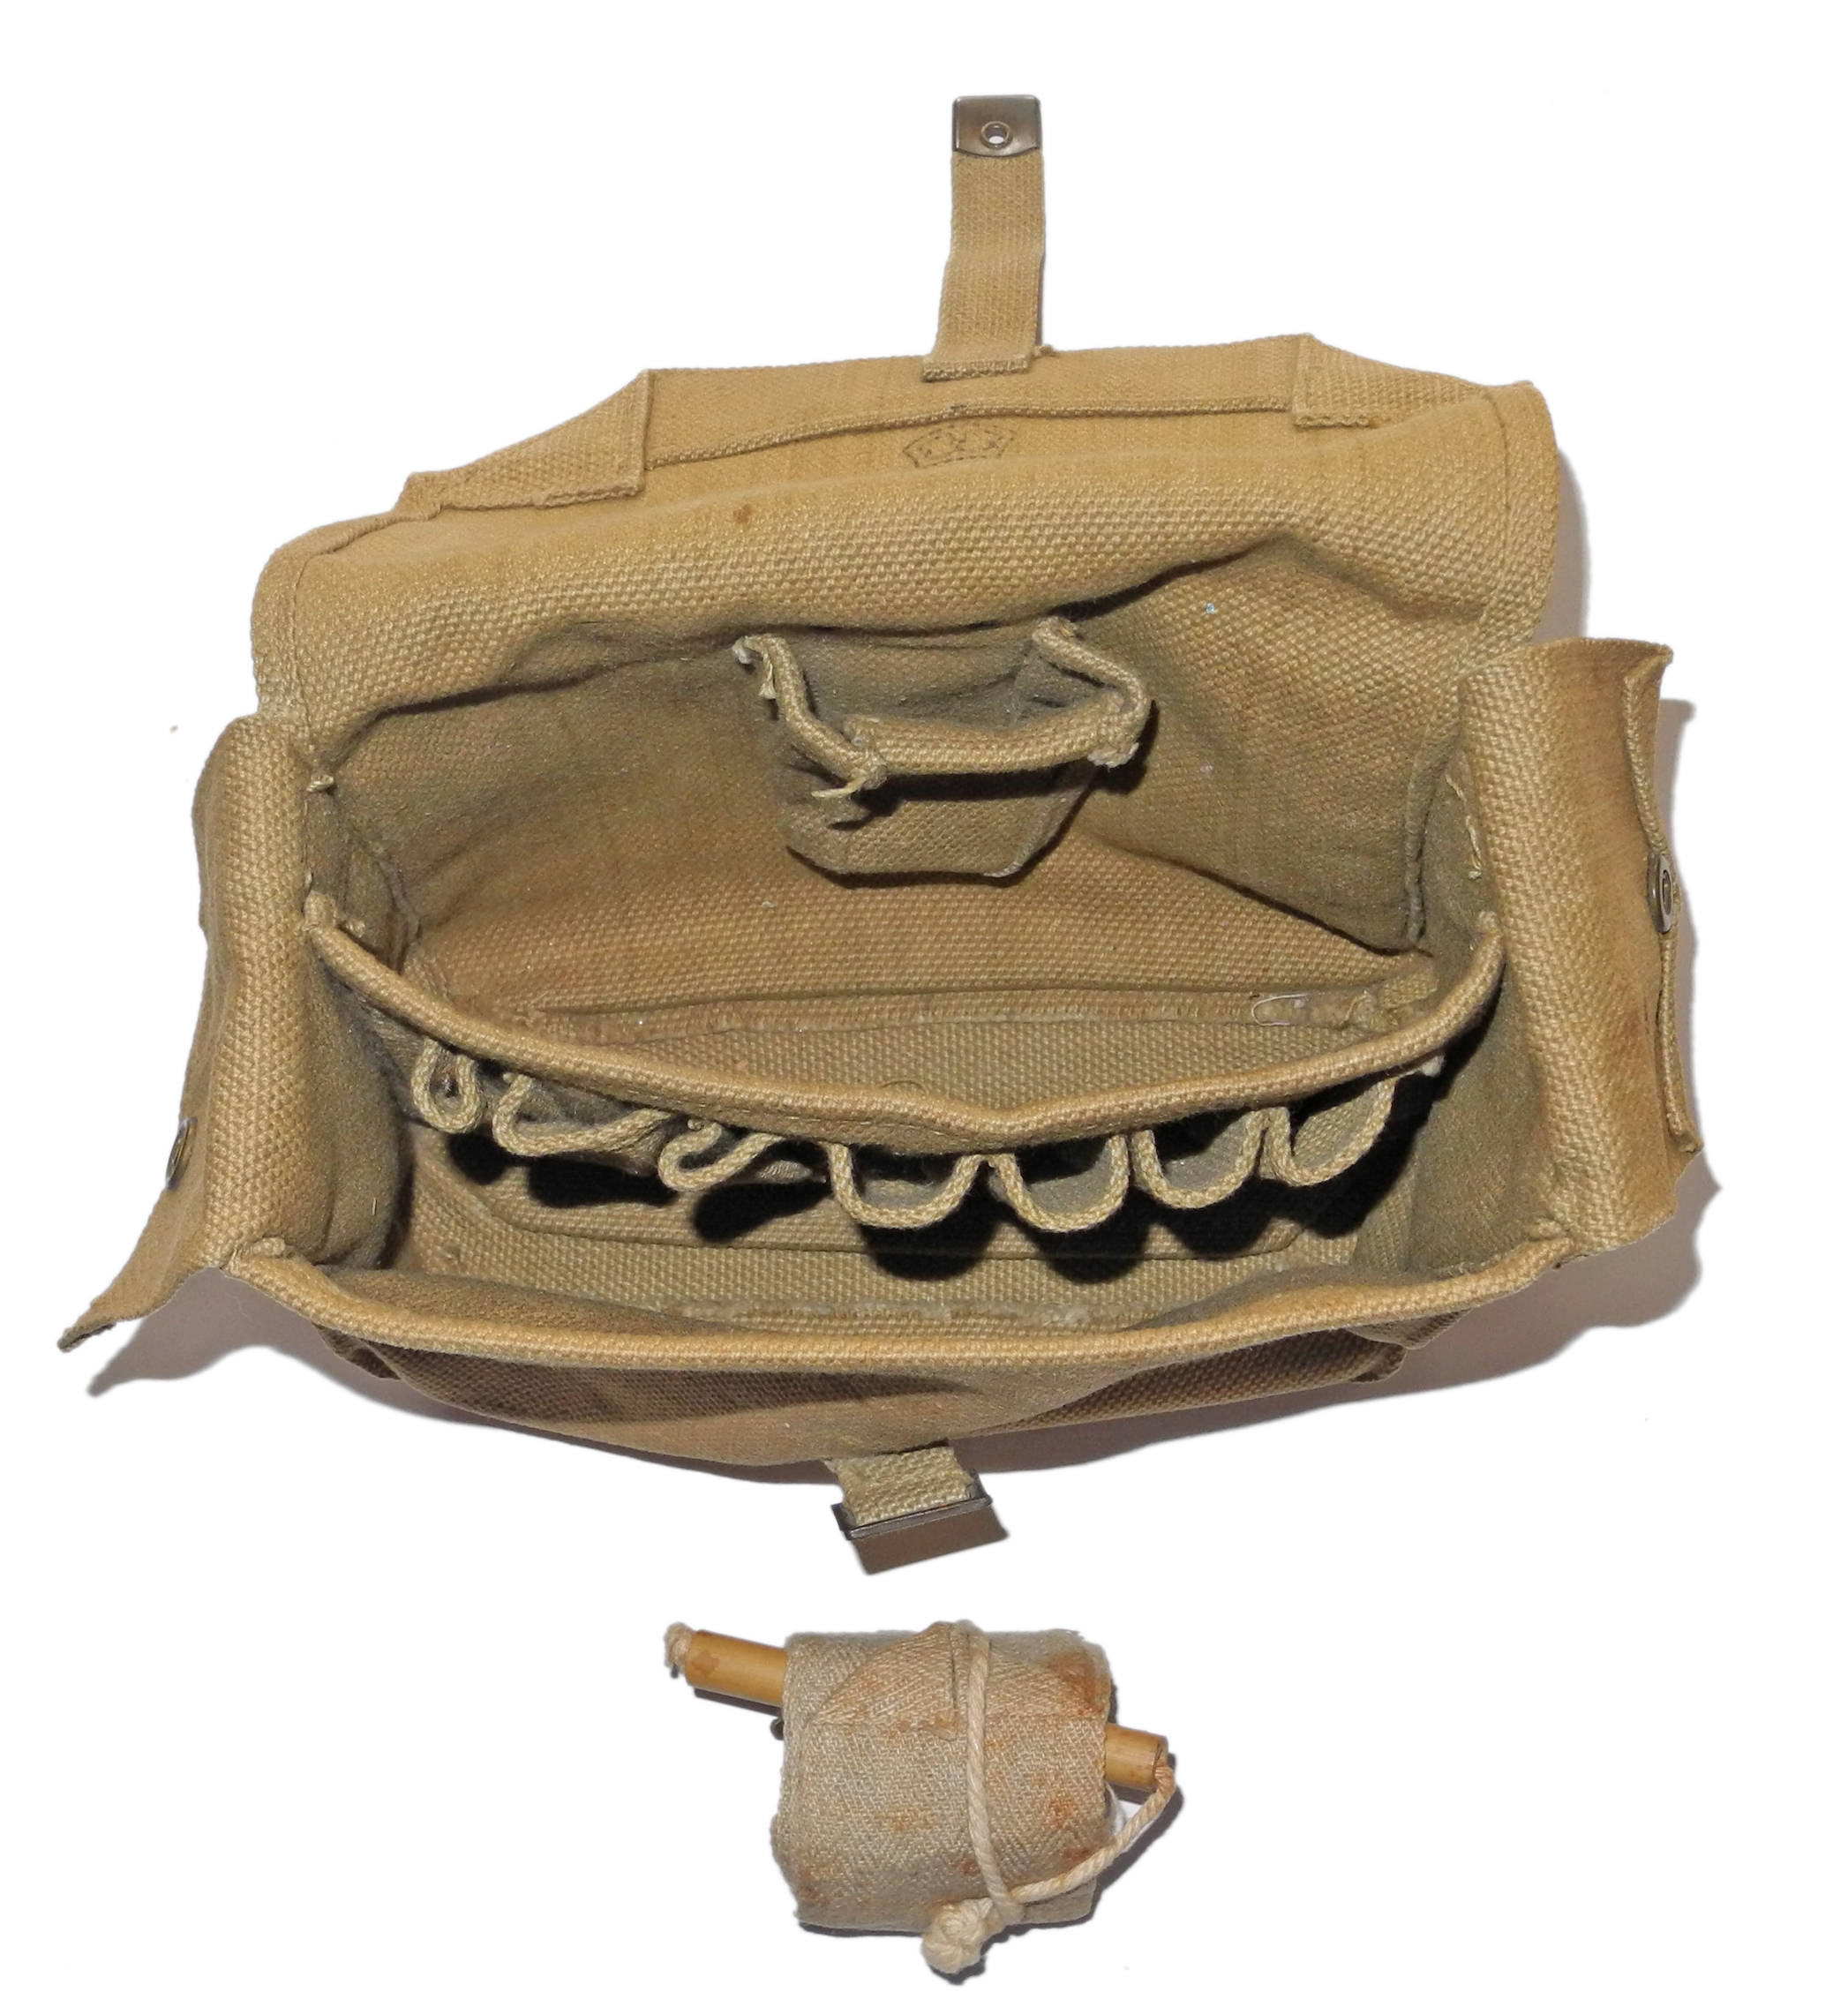 RAF Aircraft First Aid Outfit dated 1940